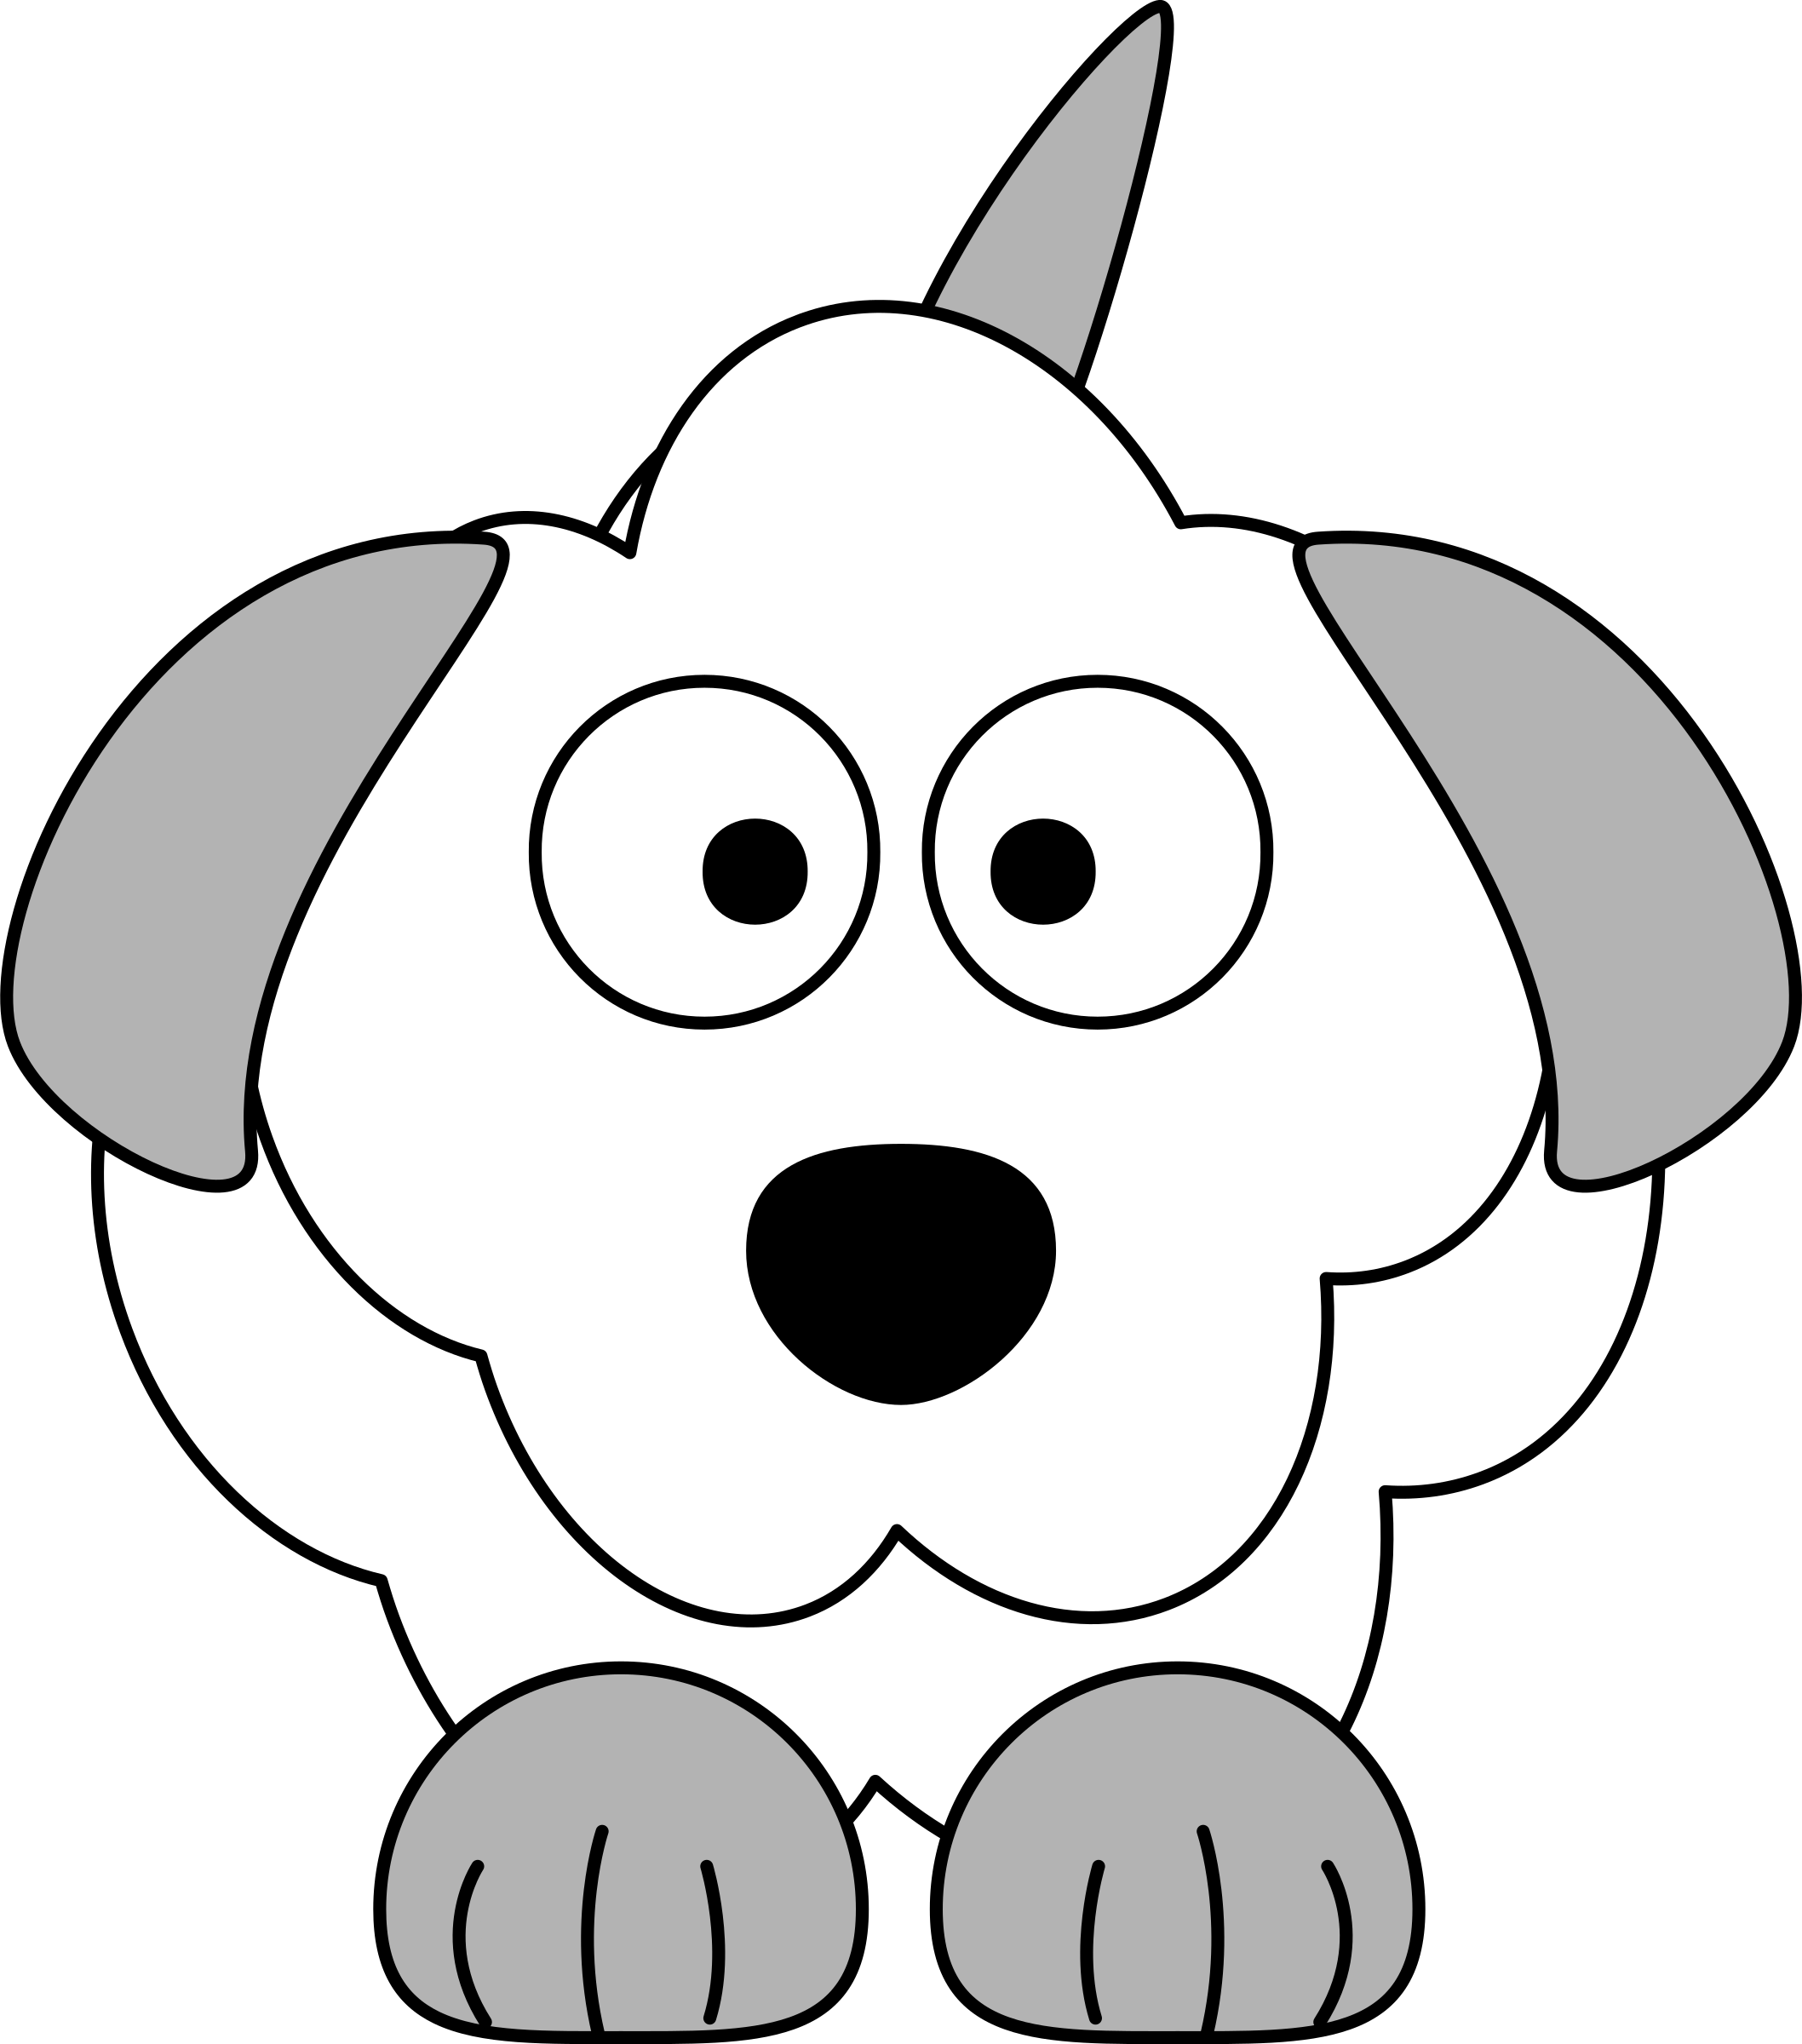 Deputy dog clipart. Black and white cartoon